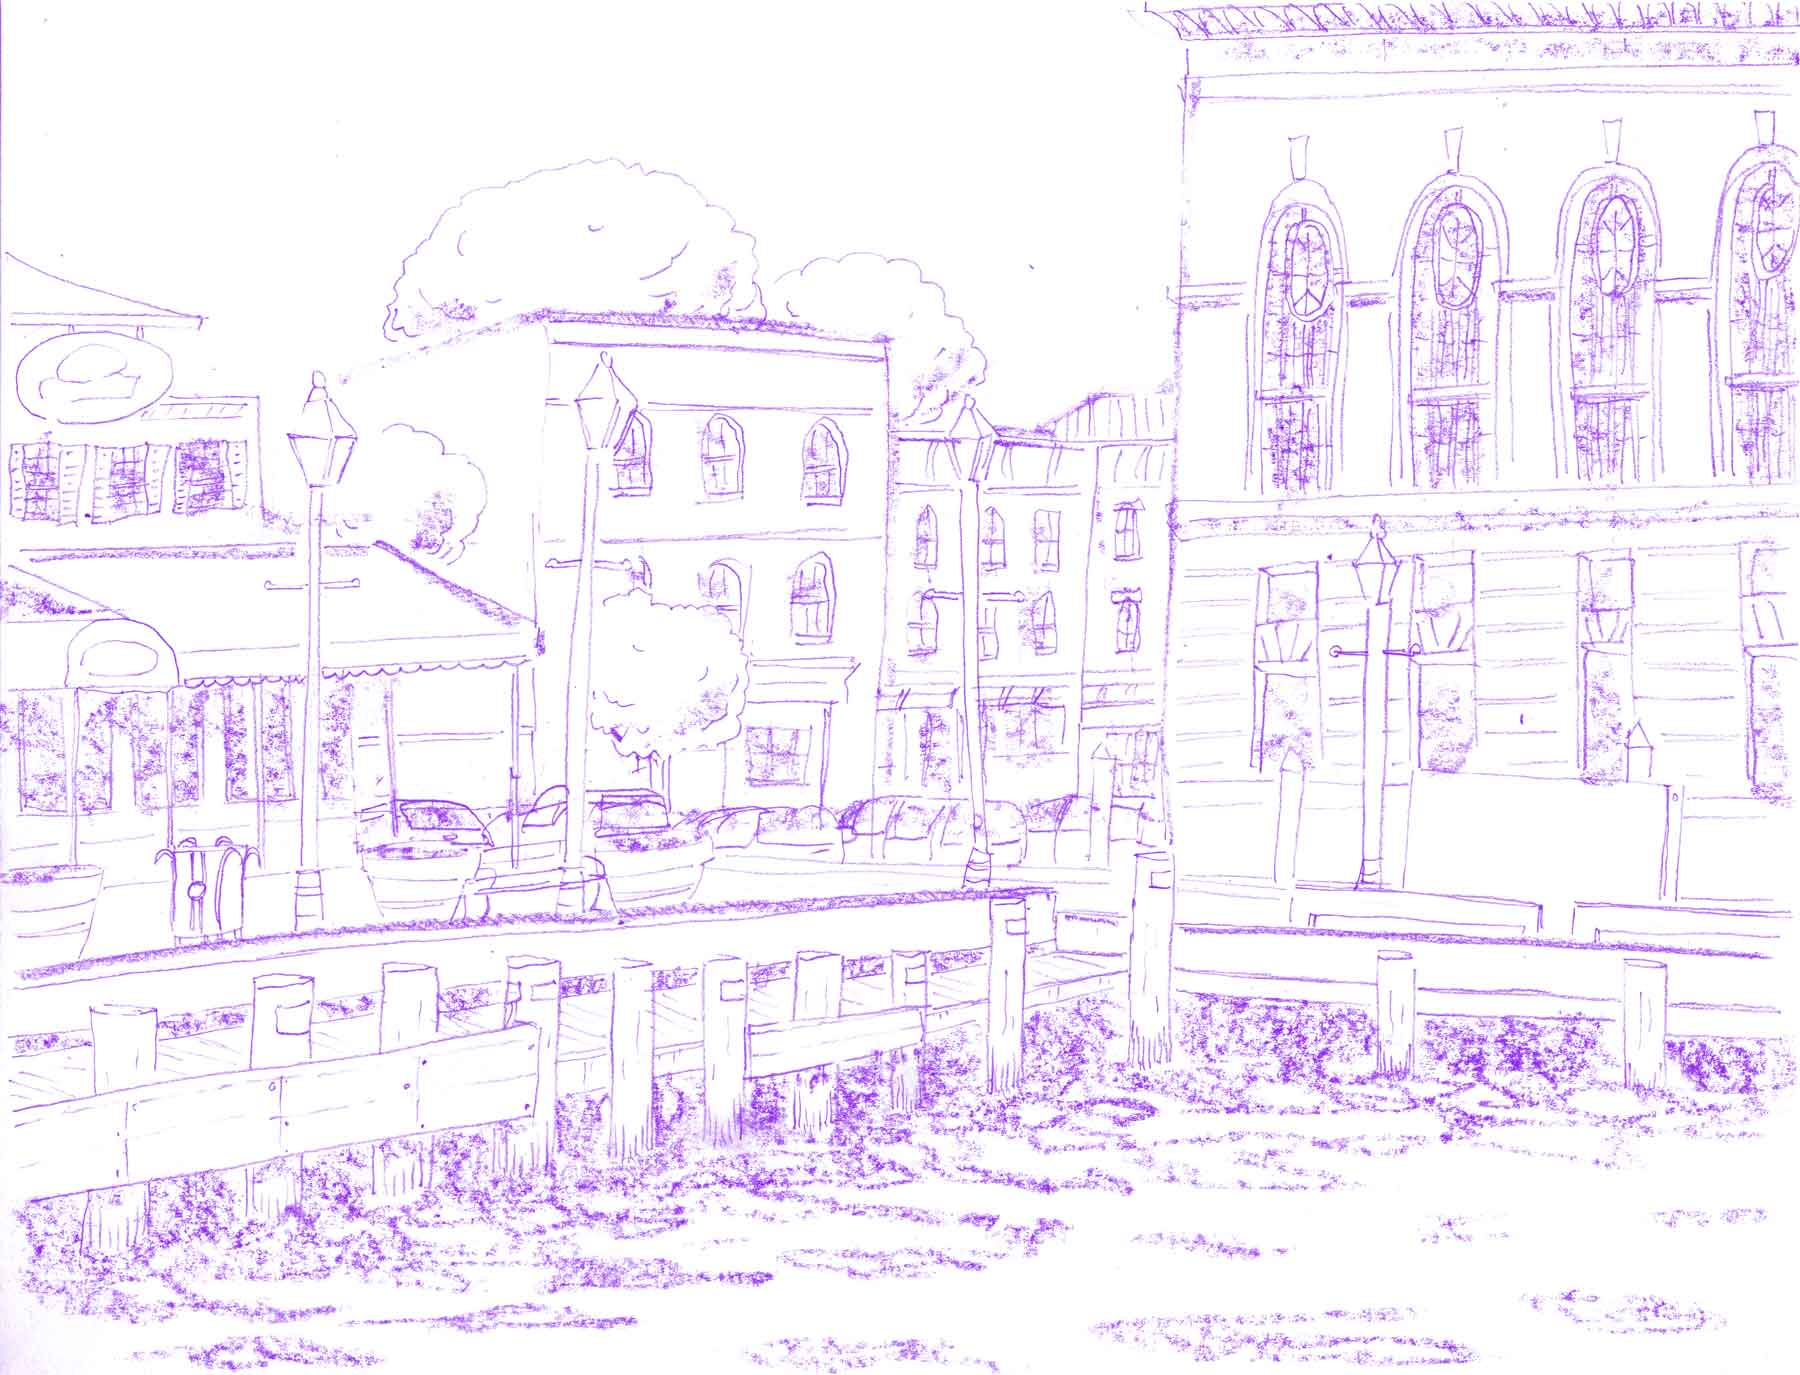 Illustration of Fells Point